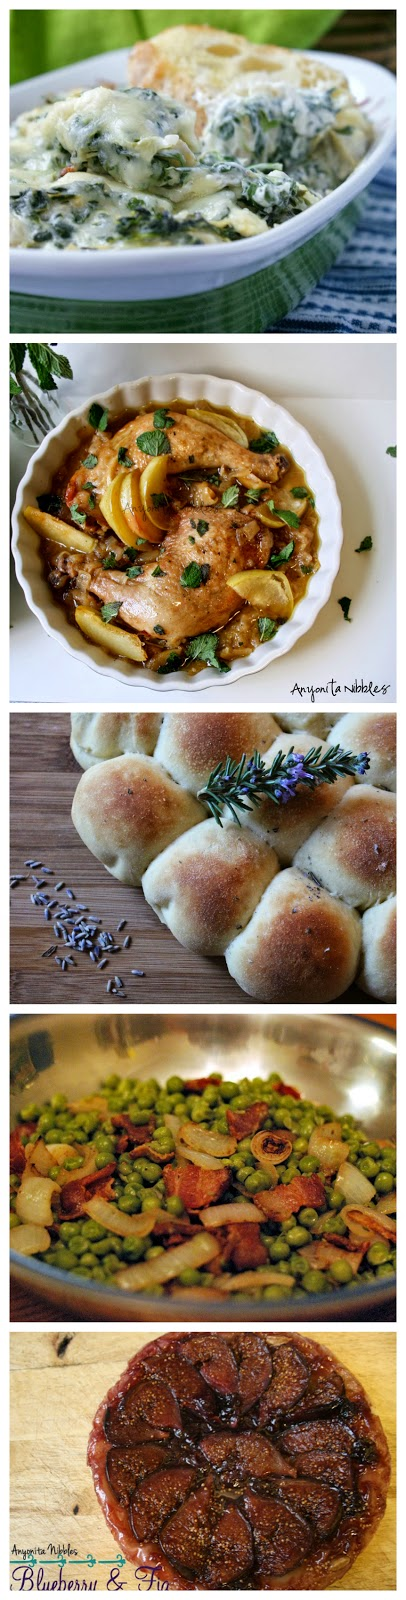 More Easter dinner options from Anyonita Nibbles